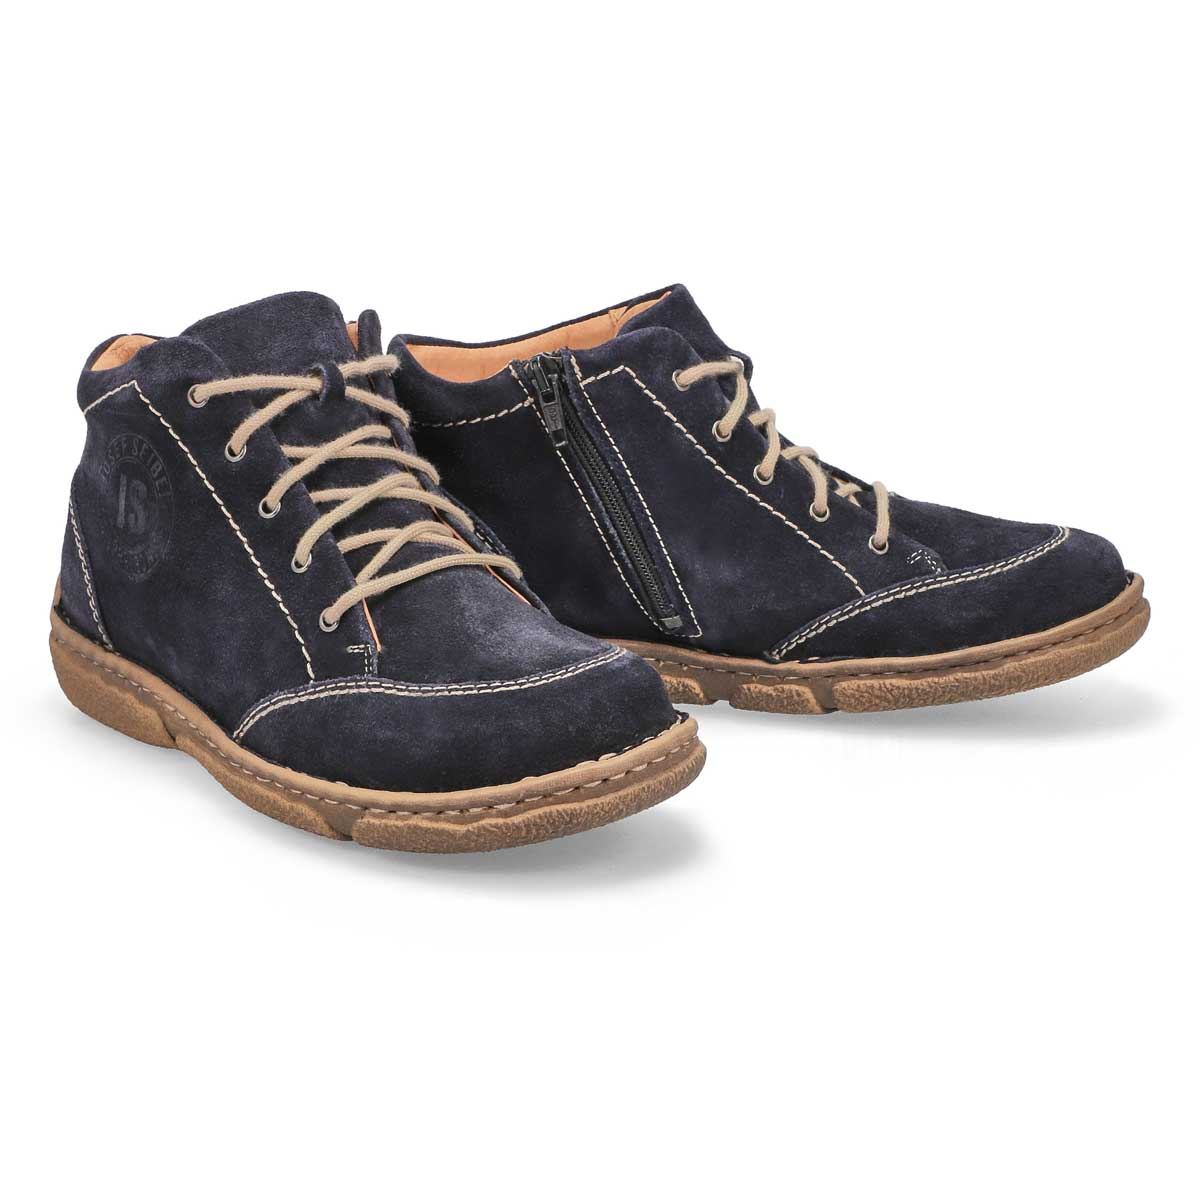 Lds Neele 01 ocean casual ankle boot